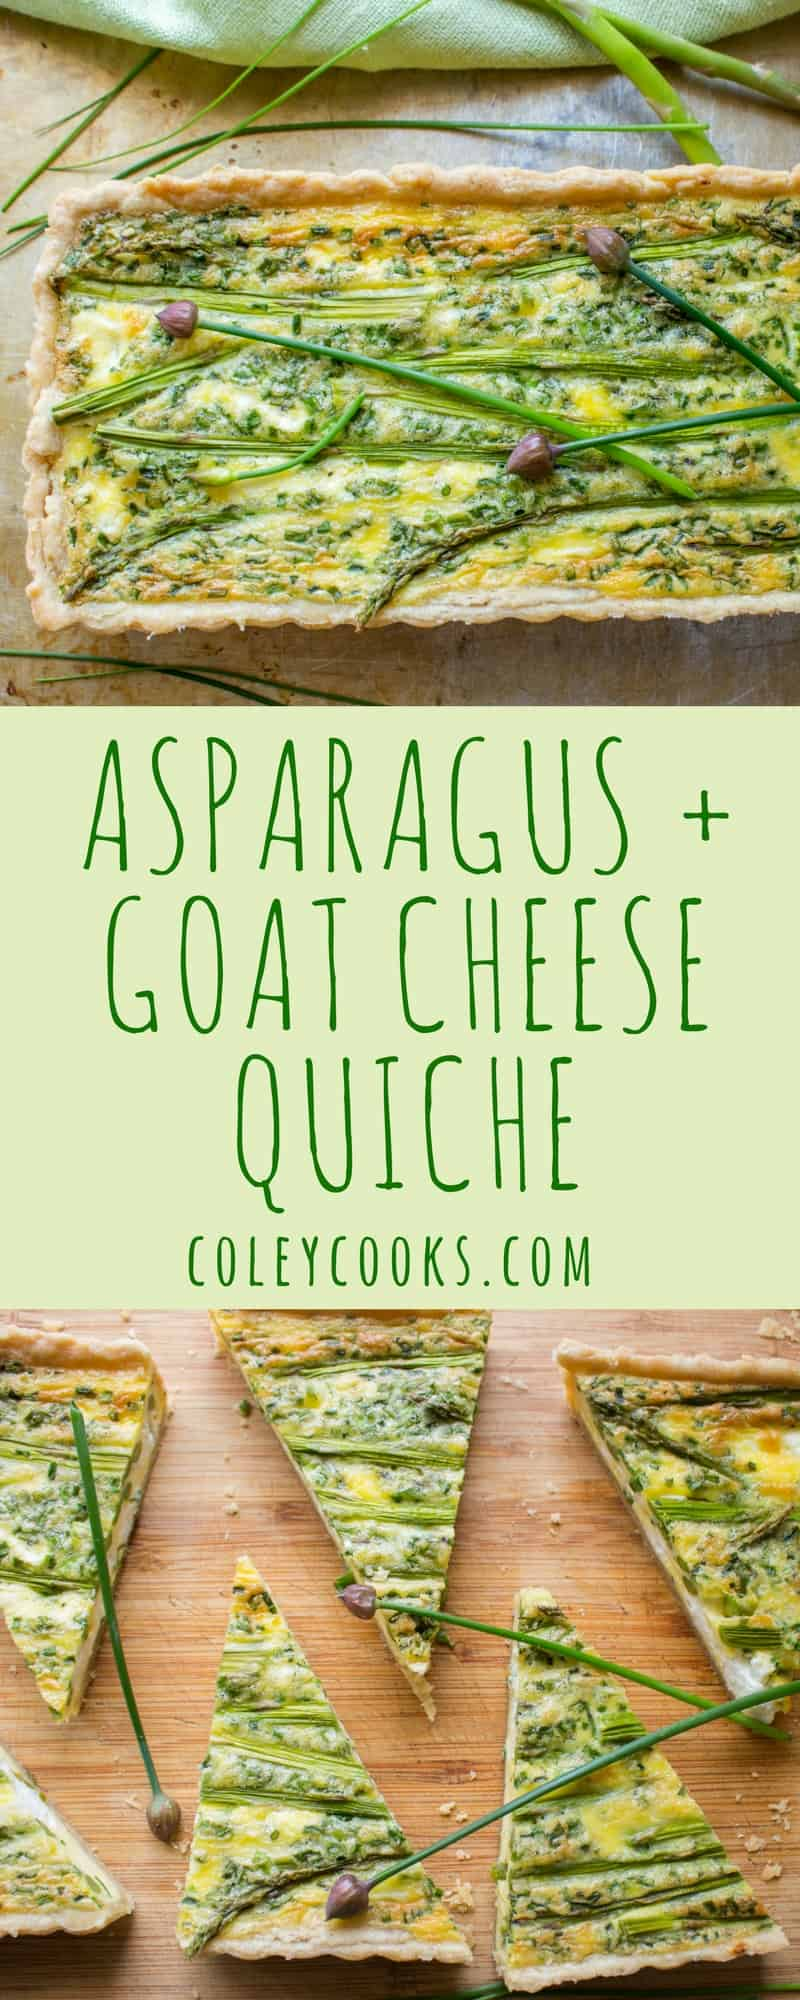 ASPARAGUS + GOAT CHEESE QUICHE | Perfect Brunch Fare for Spring! | ColeyCooks.com